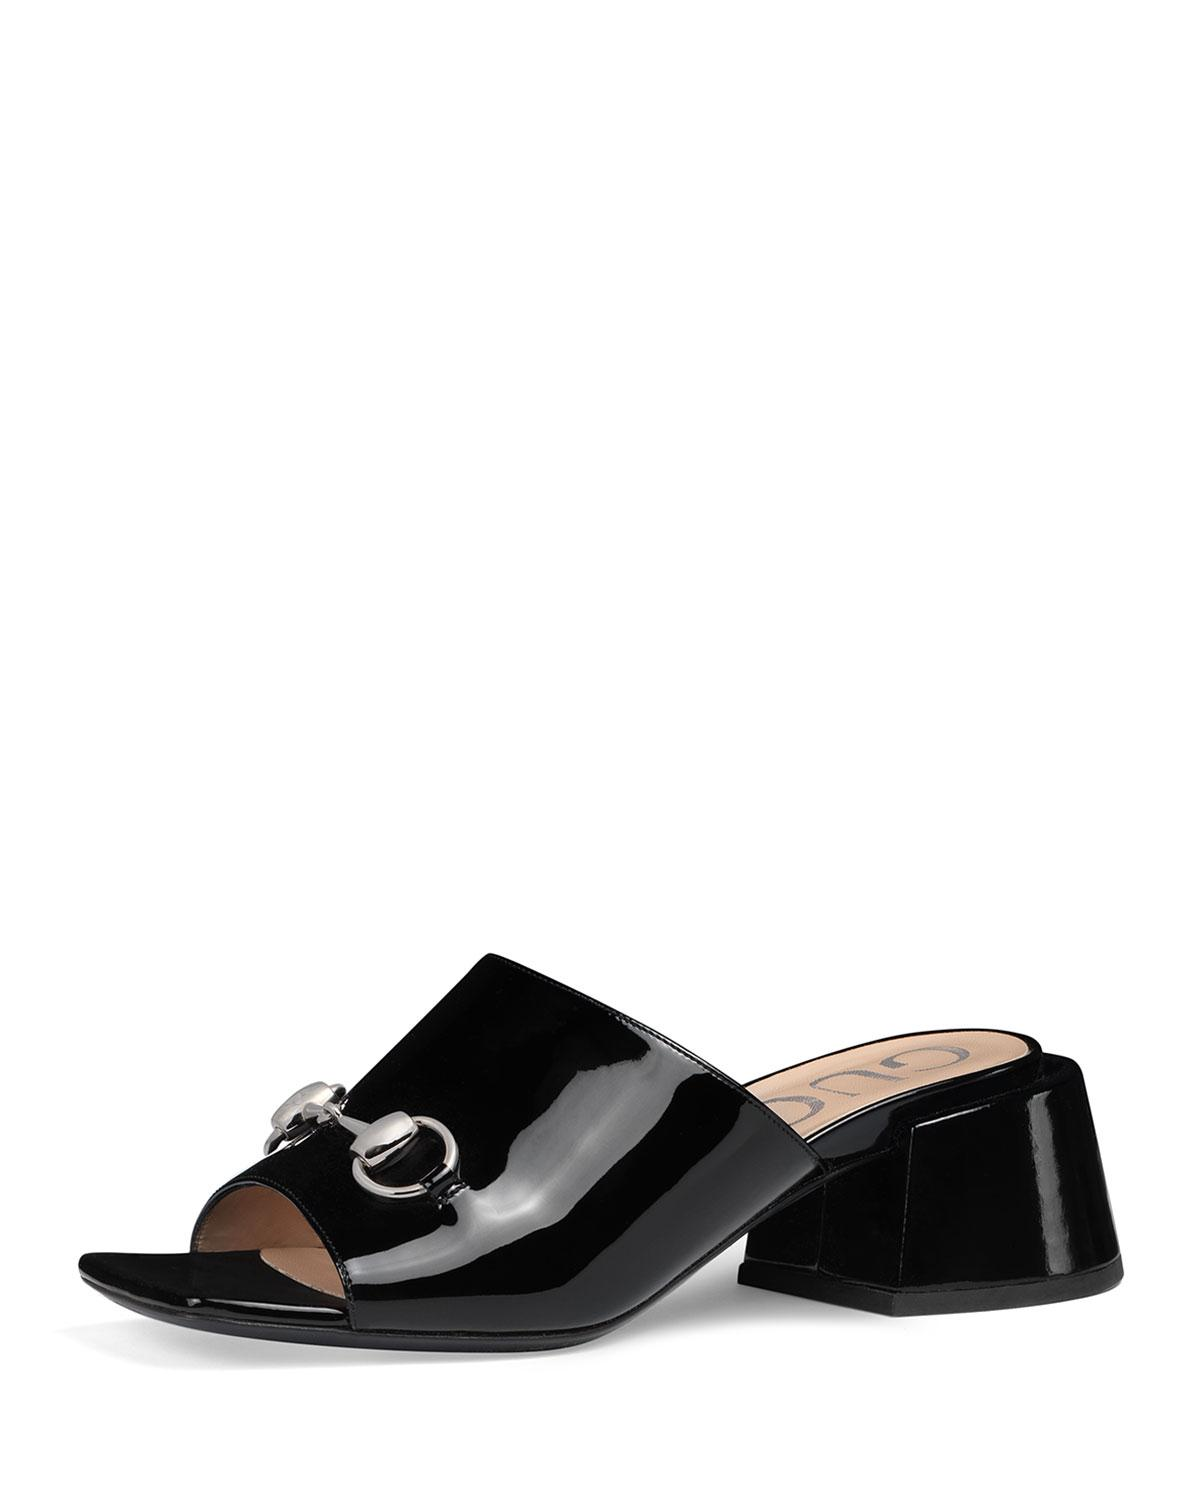 9d01cdf9a6db Lyst - Gucci Lexi 55mm Patent Leather Slide in Black